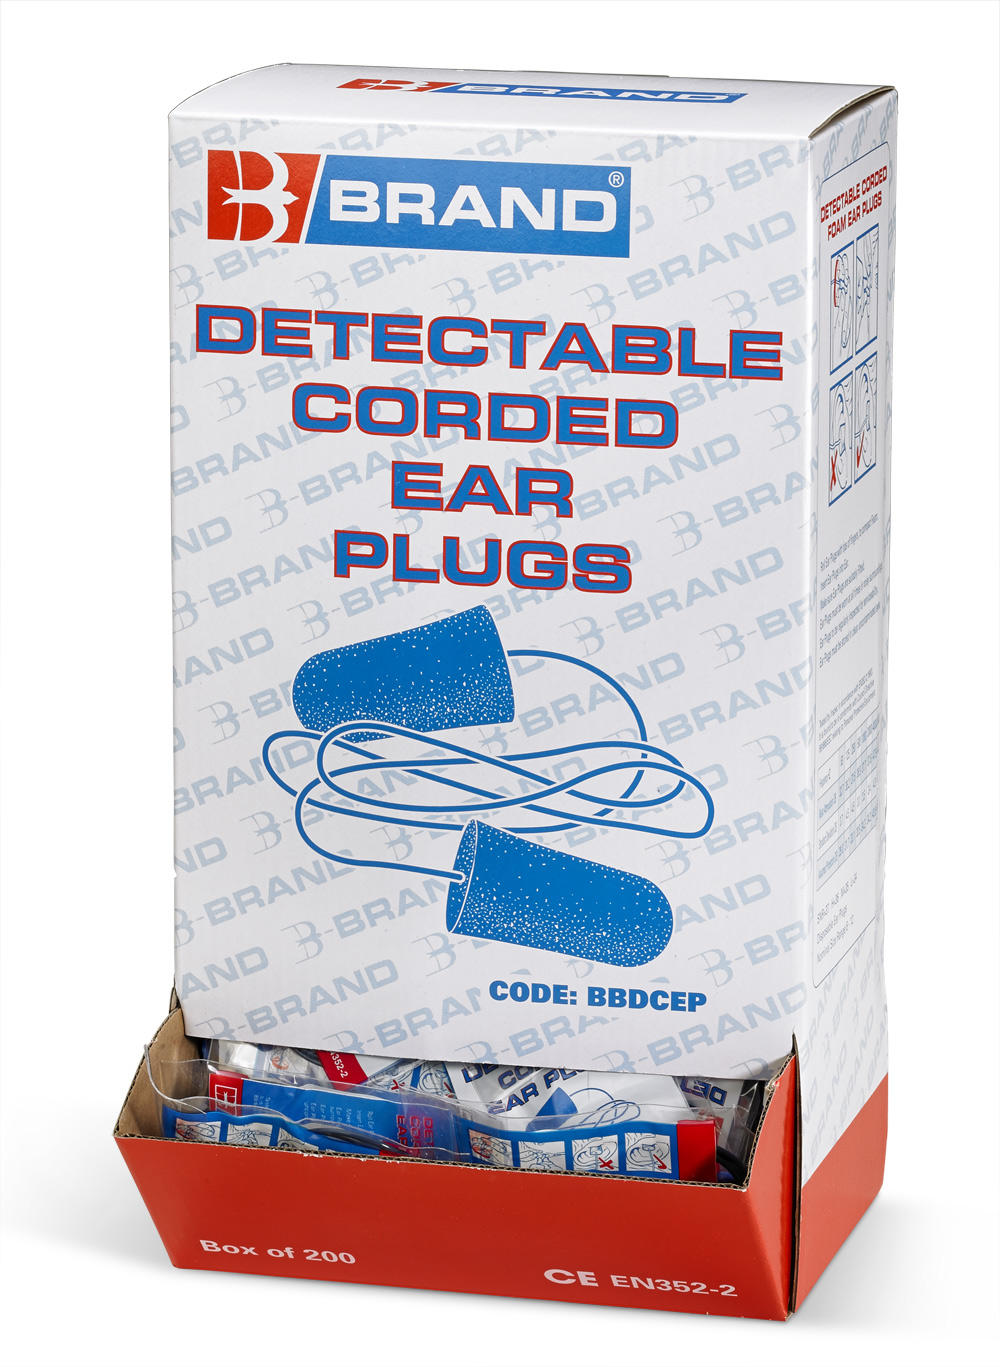 CORDED DETECTABLE PLUGS - BBDCEP